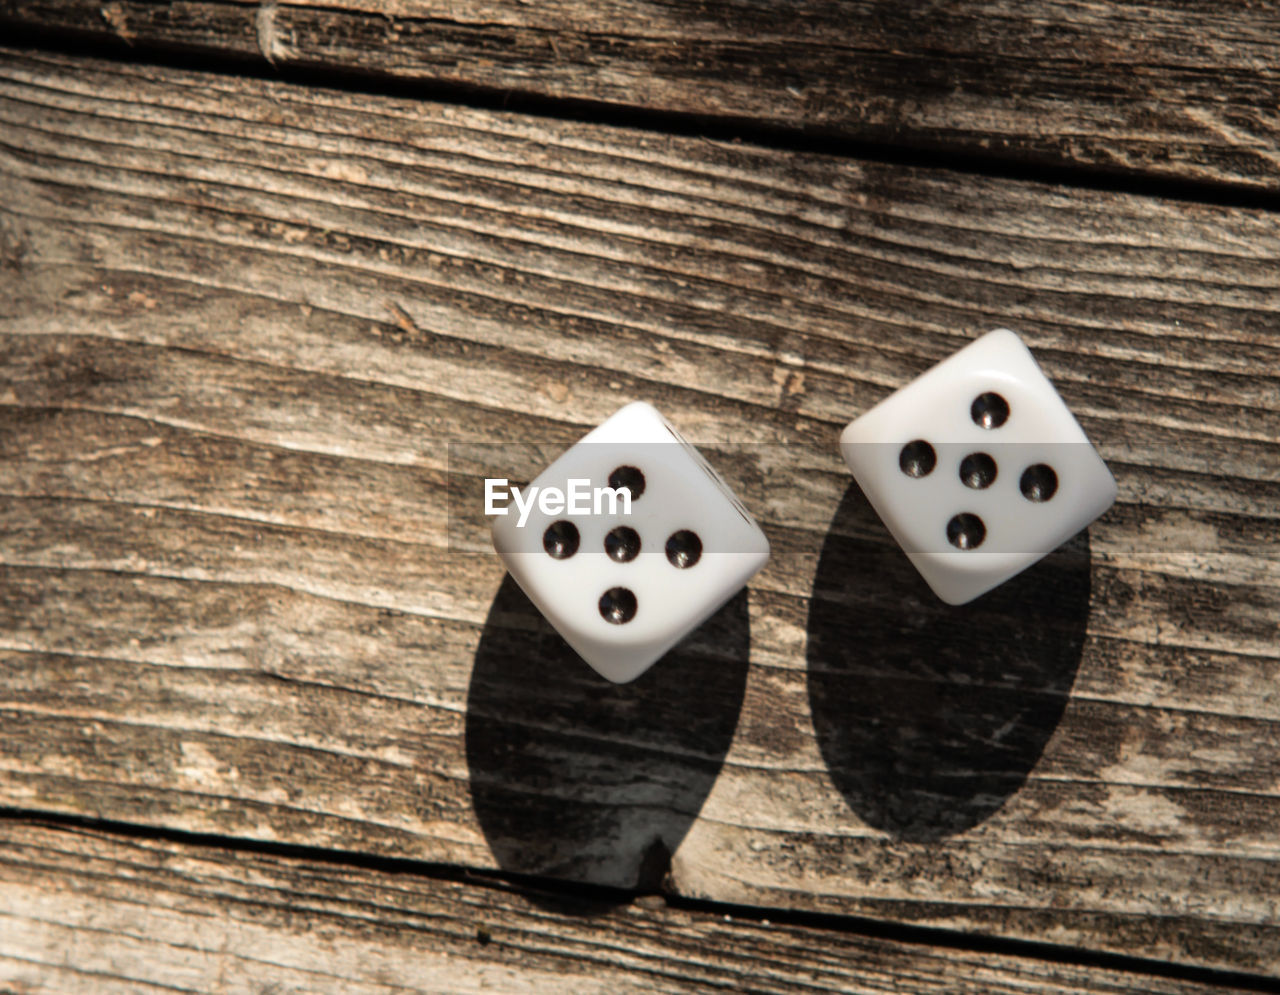 wood - material, dice, leisure games, luck, gambling, opportunity, table, arts culture and entertainment, indoors, relaxation, leisure activity, still life, two objects, no people, close-up, high angle view, plank, directly above, focus on foreground, pattern, game of chance